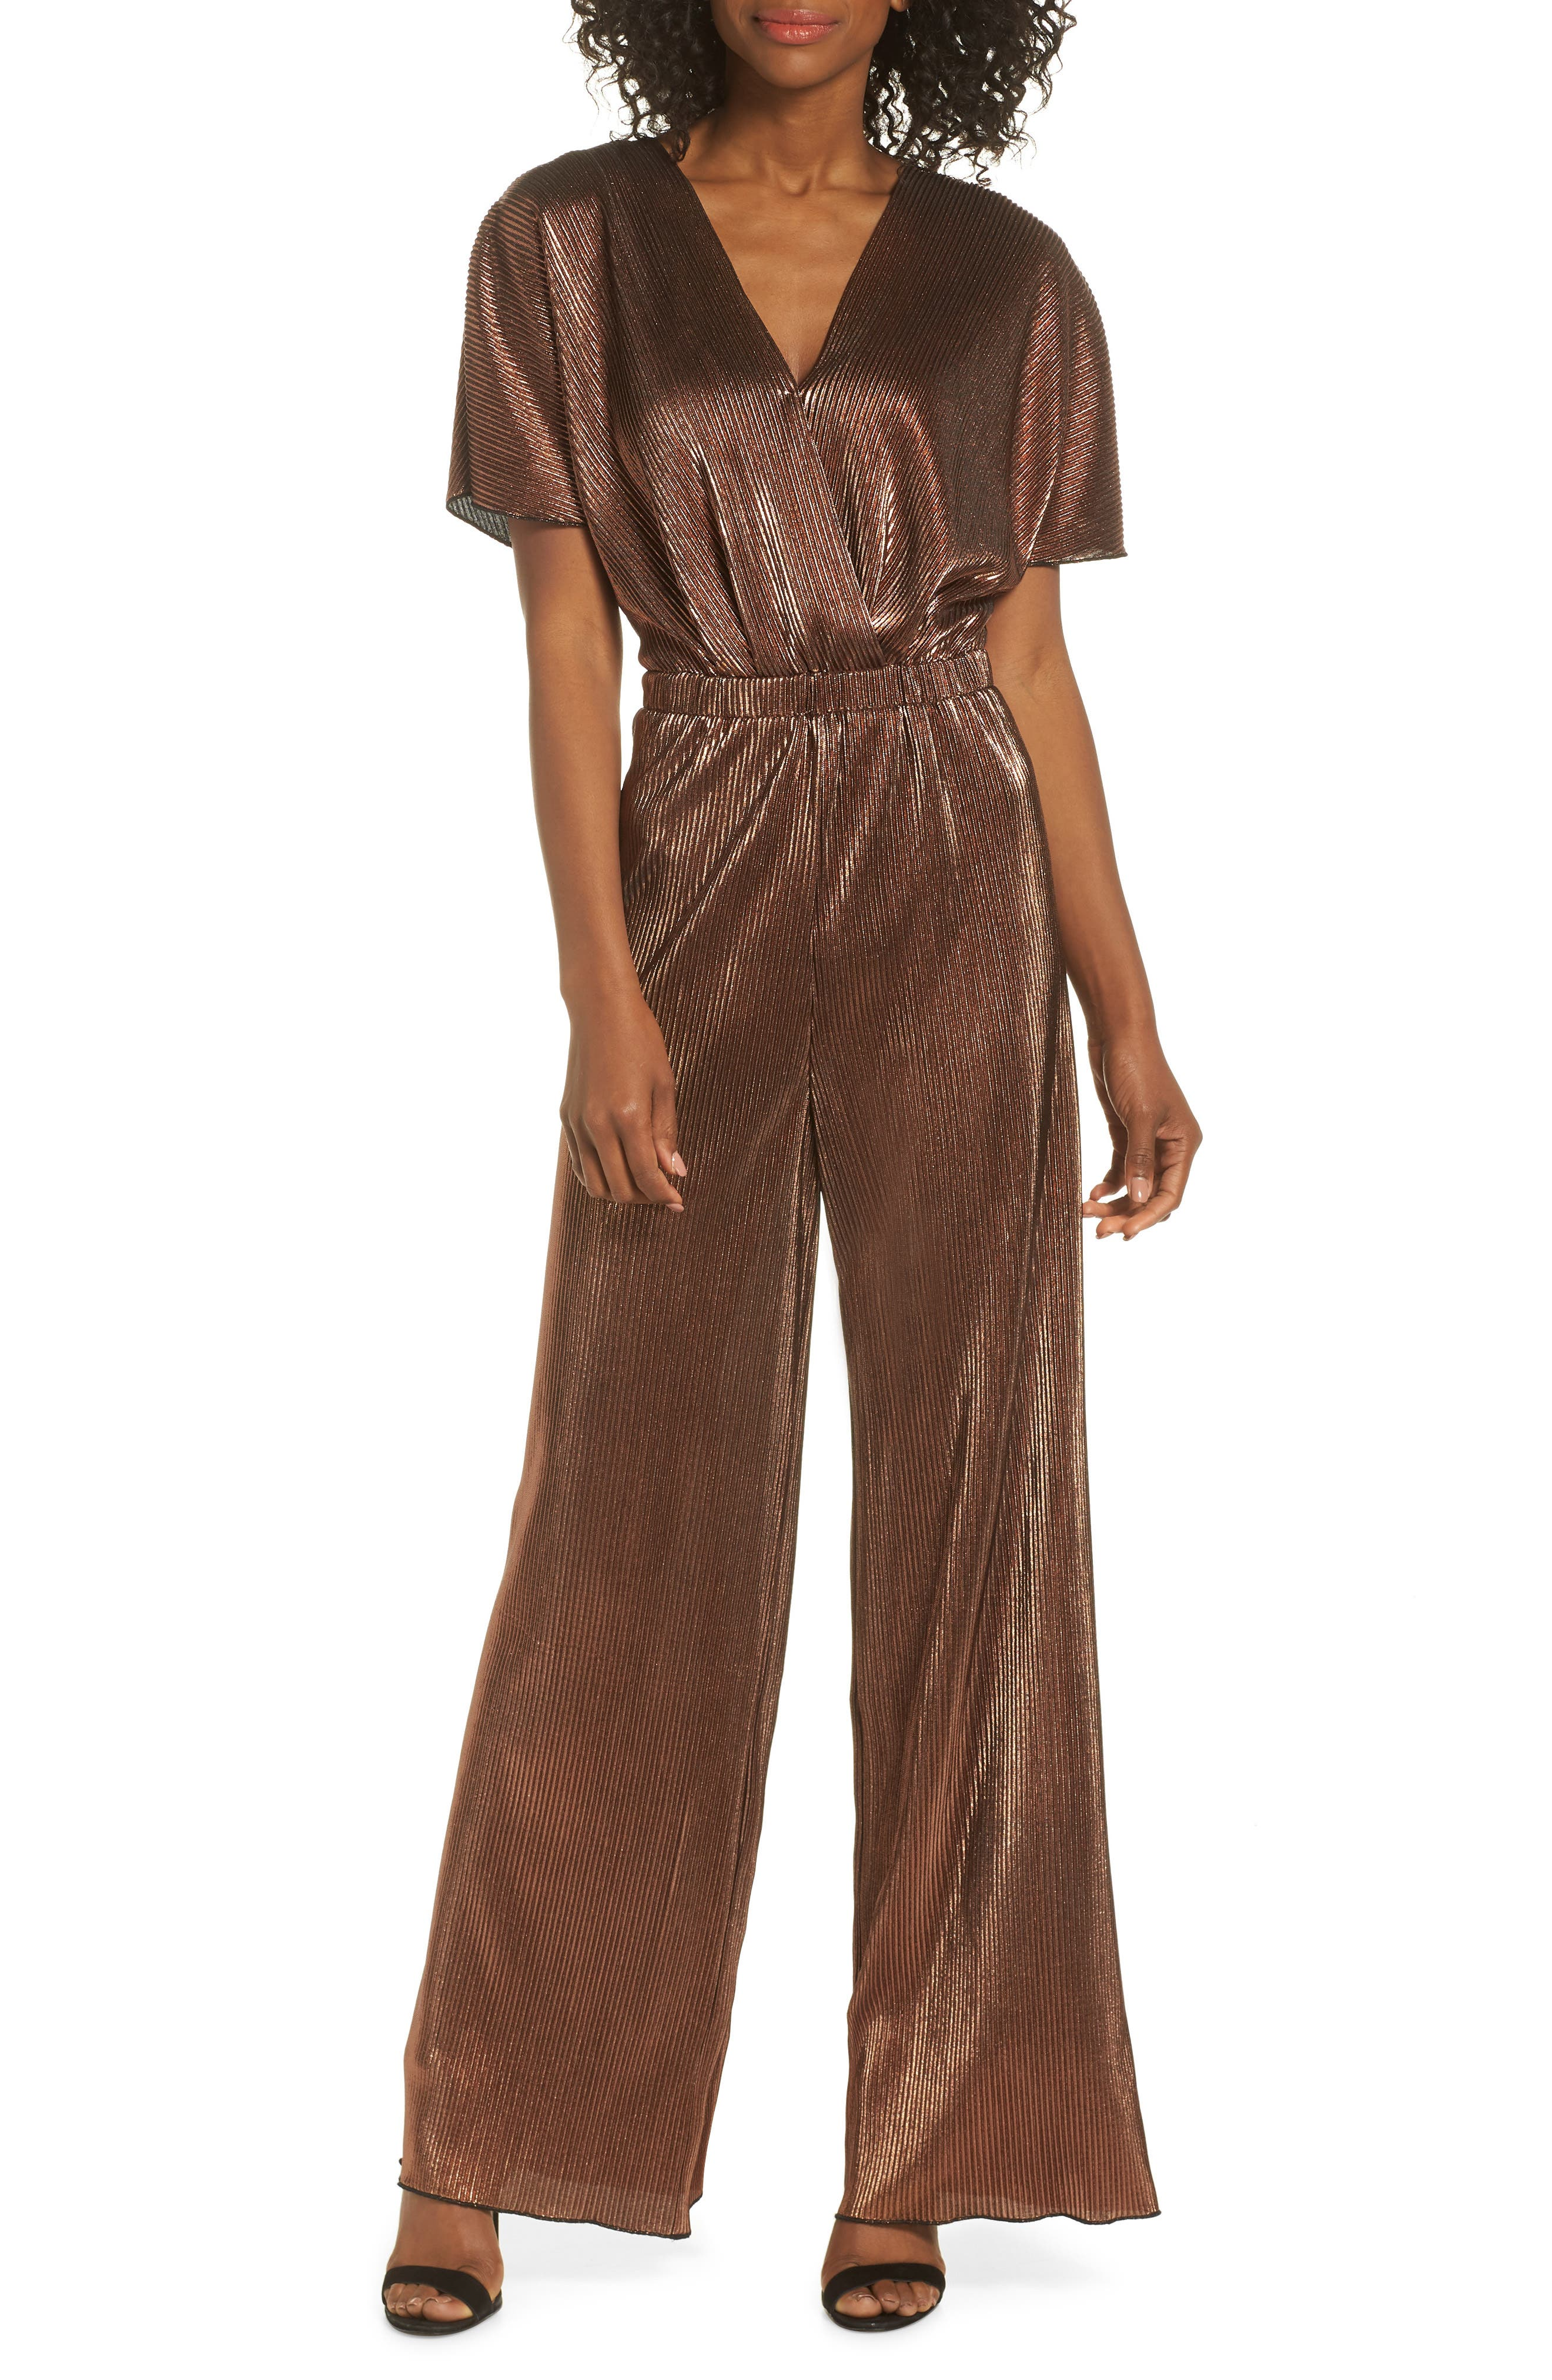 CHARLES HENRY, Crossover Jumpsuit, Main thumbnail 1, color, 220